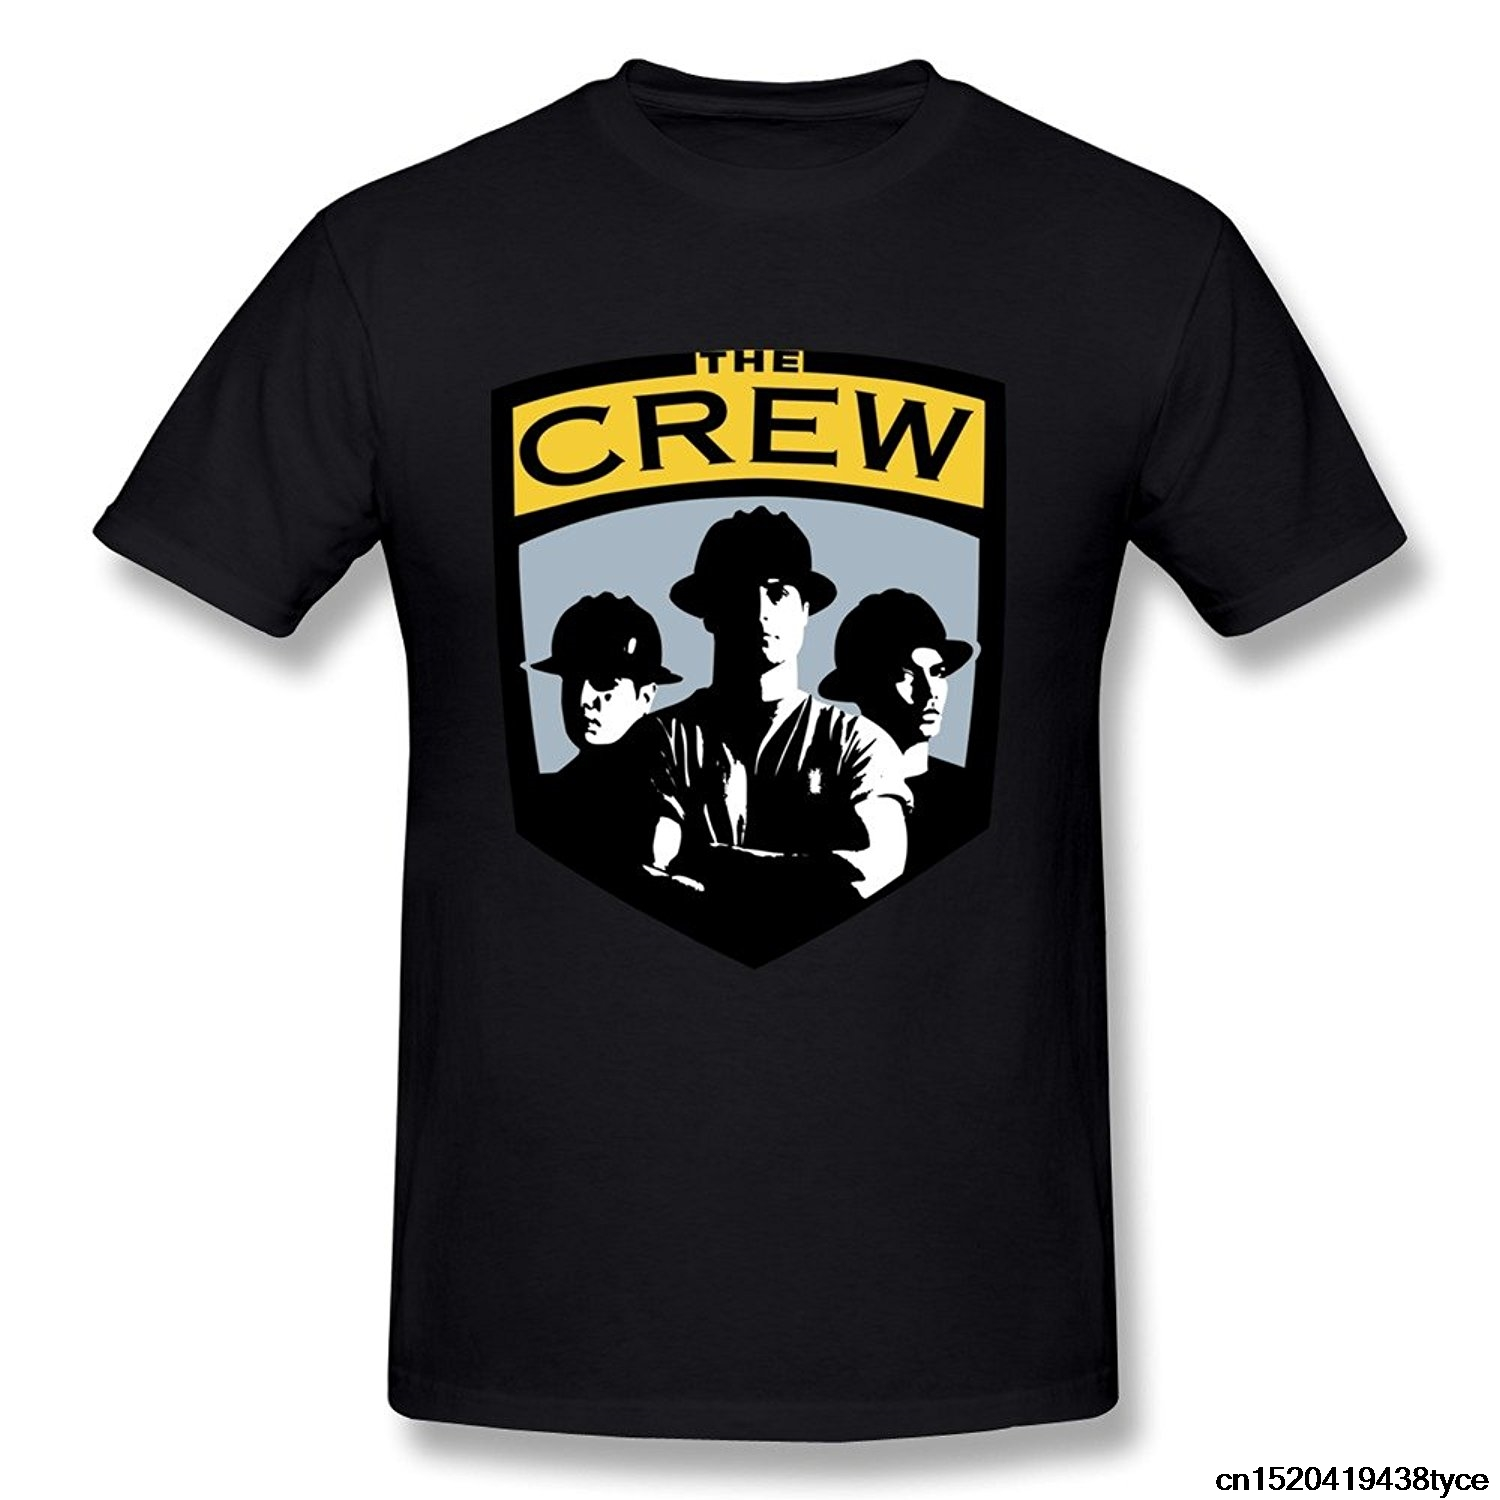 Jzecco Llangla Mens Columbus Crew Old Logo T Shirt Fashion Design